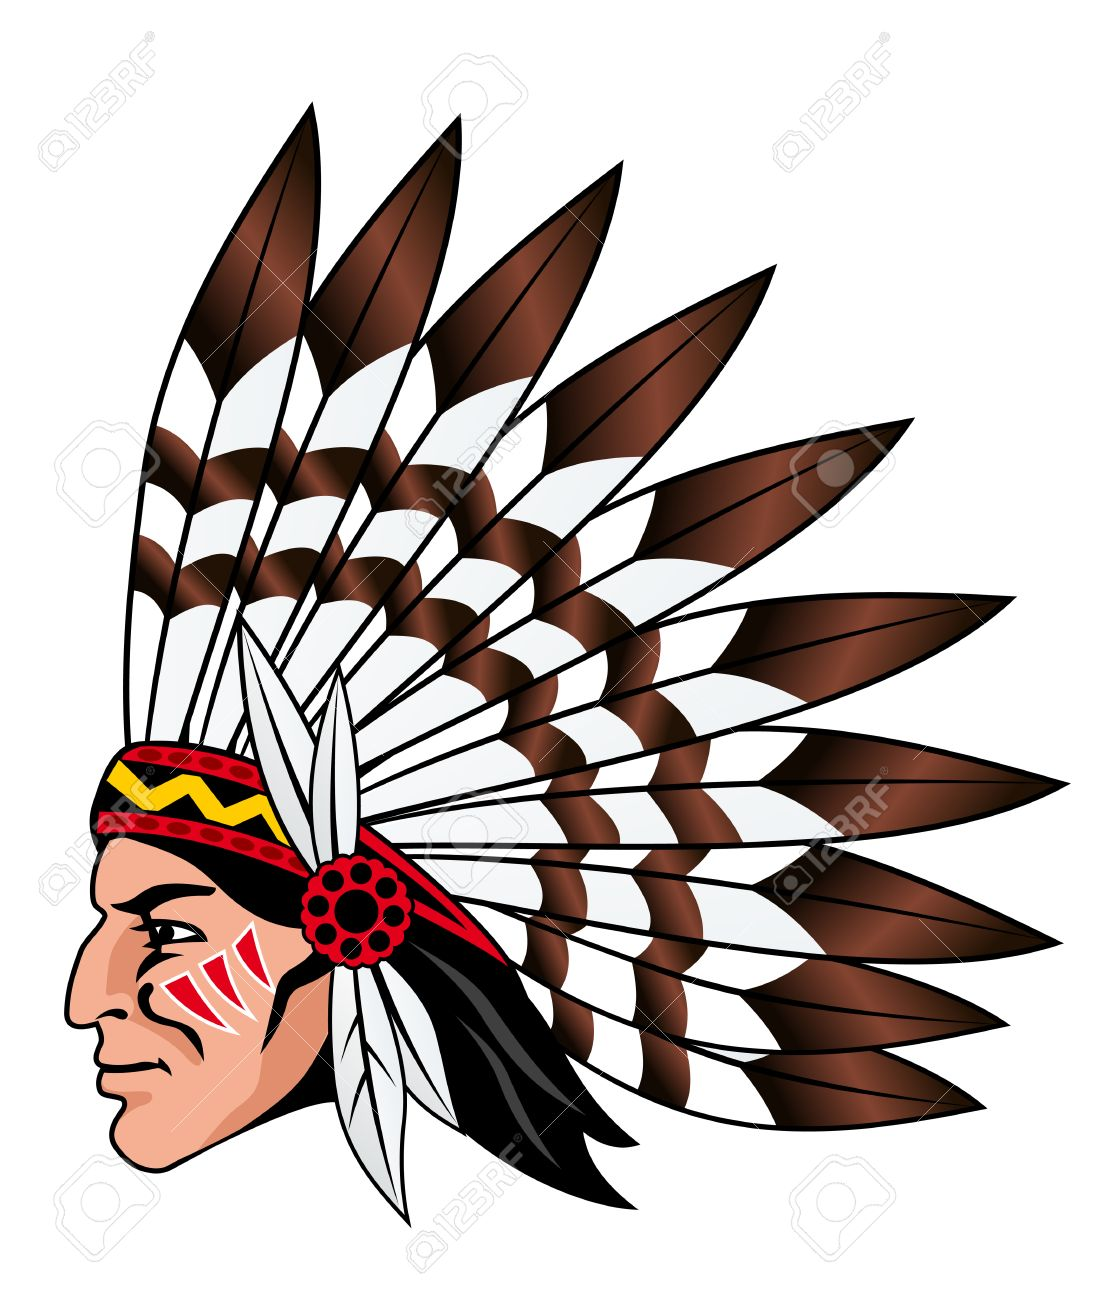 Native american chief clipart svg transparent Native american indian chief head clip art image clipartix - Clipartix svg transparent